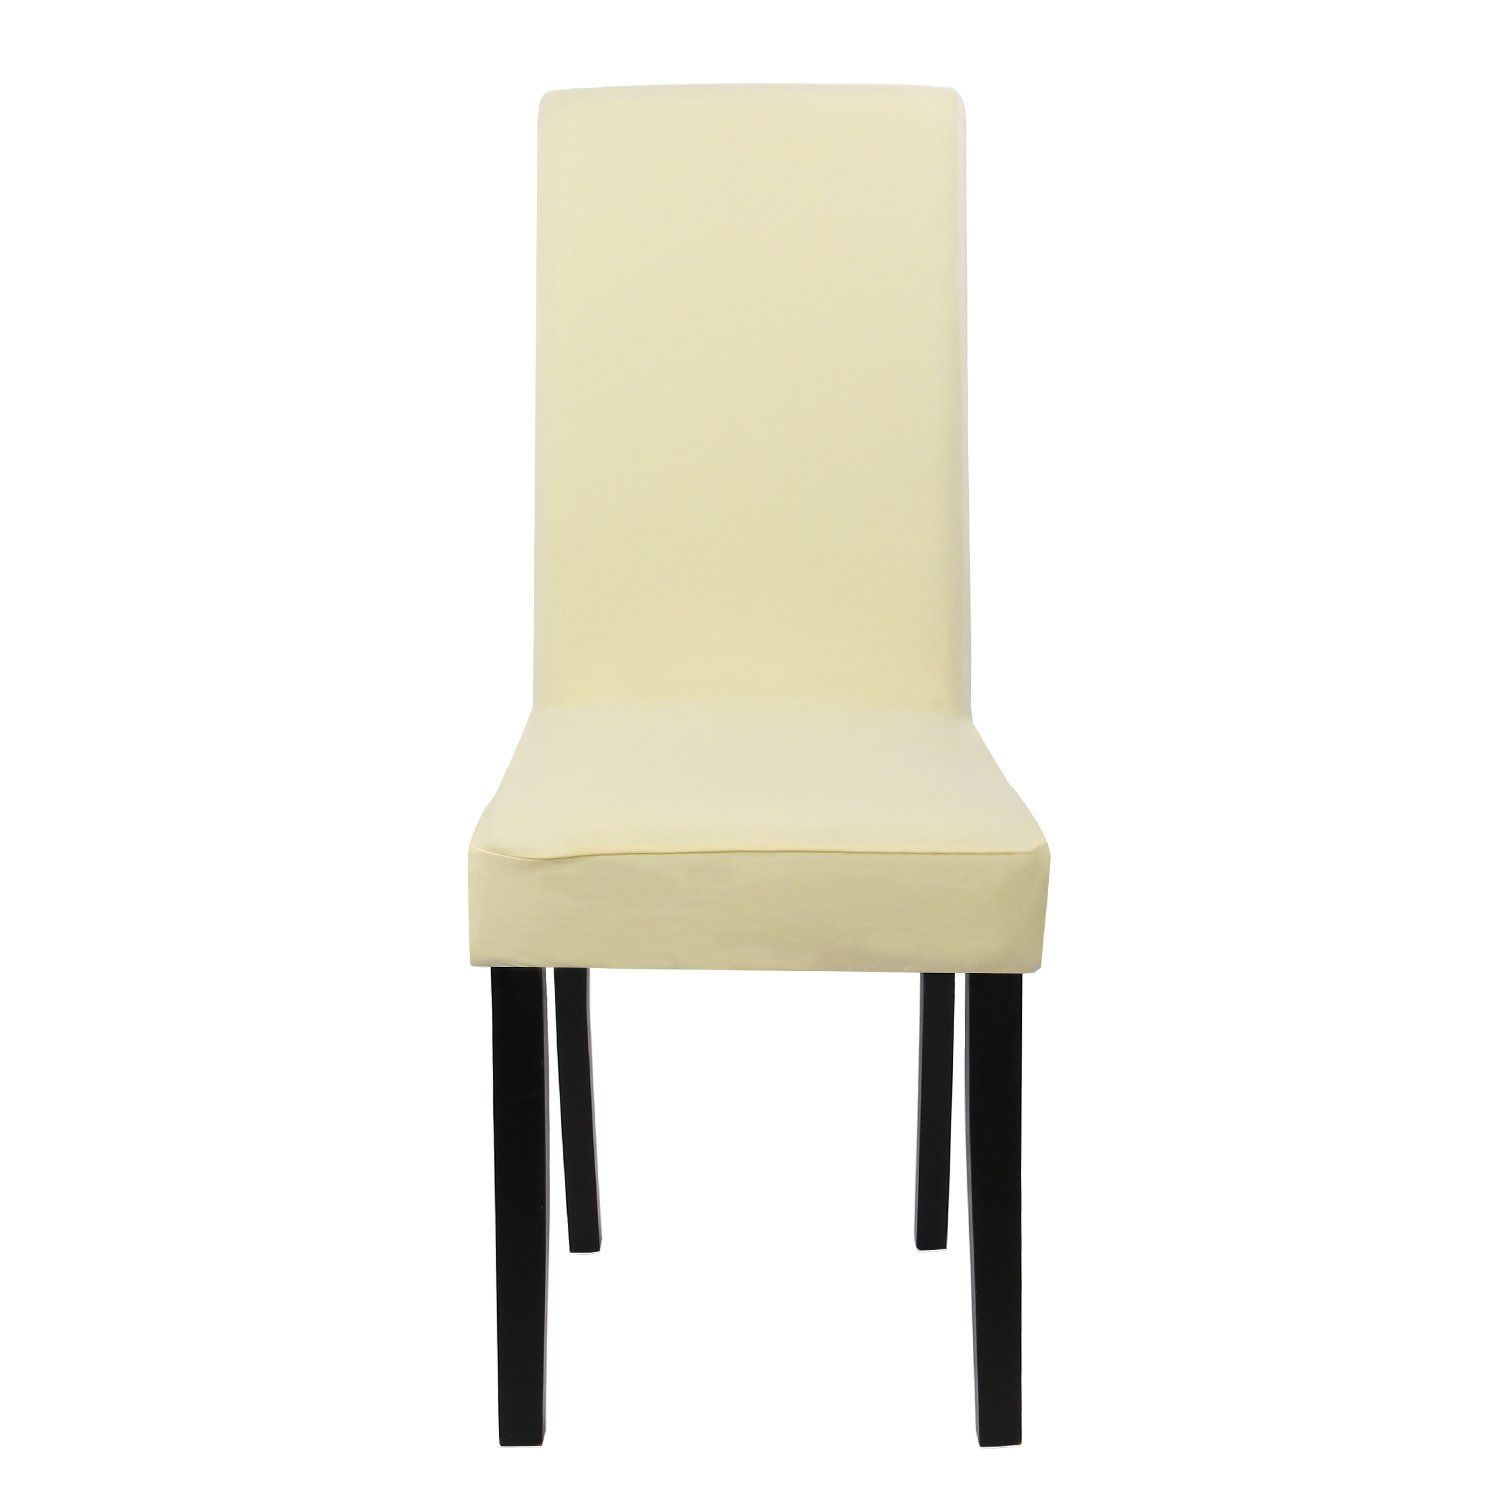 Chairs Cover For Dining Room Washable Slipcover Fit Spandex Seat Chair Covers Protector